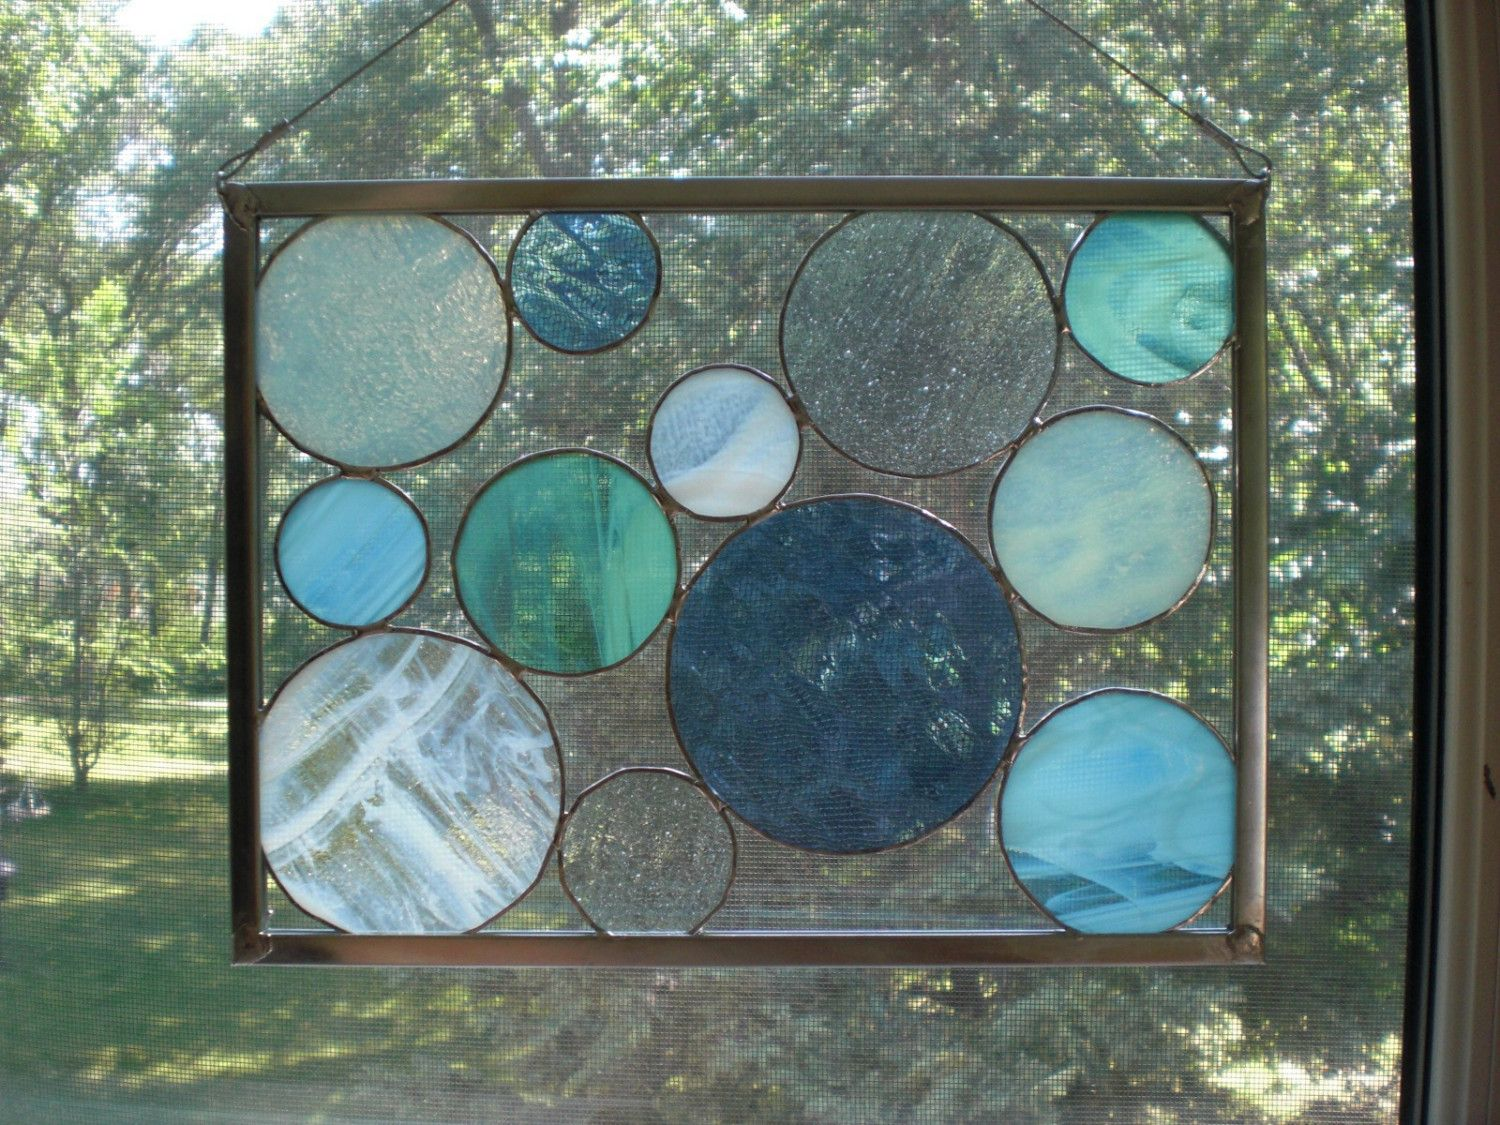 Sea Glass Stained Glass Circles from Sandhill Shores Studio - good idea to use stained glass circle mixed in with the vintage cut glass plates I found thrifting!